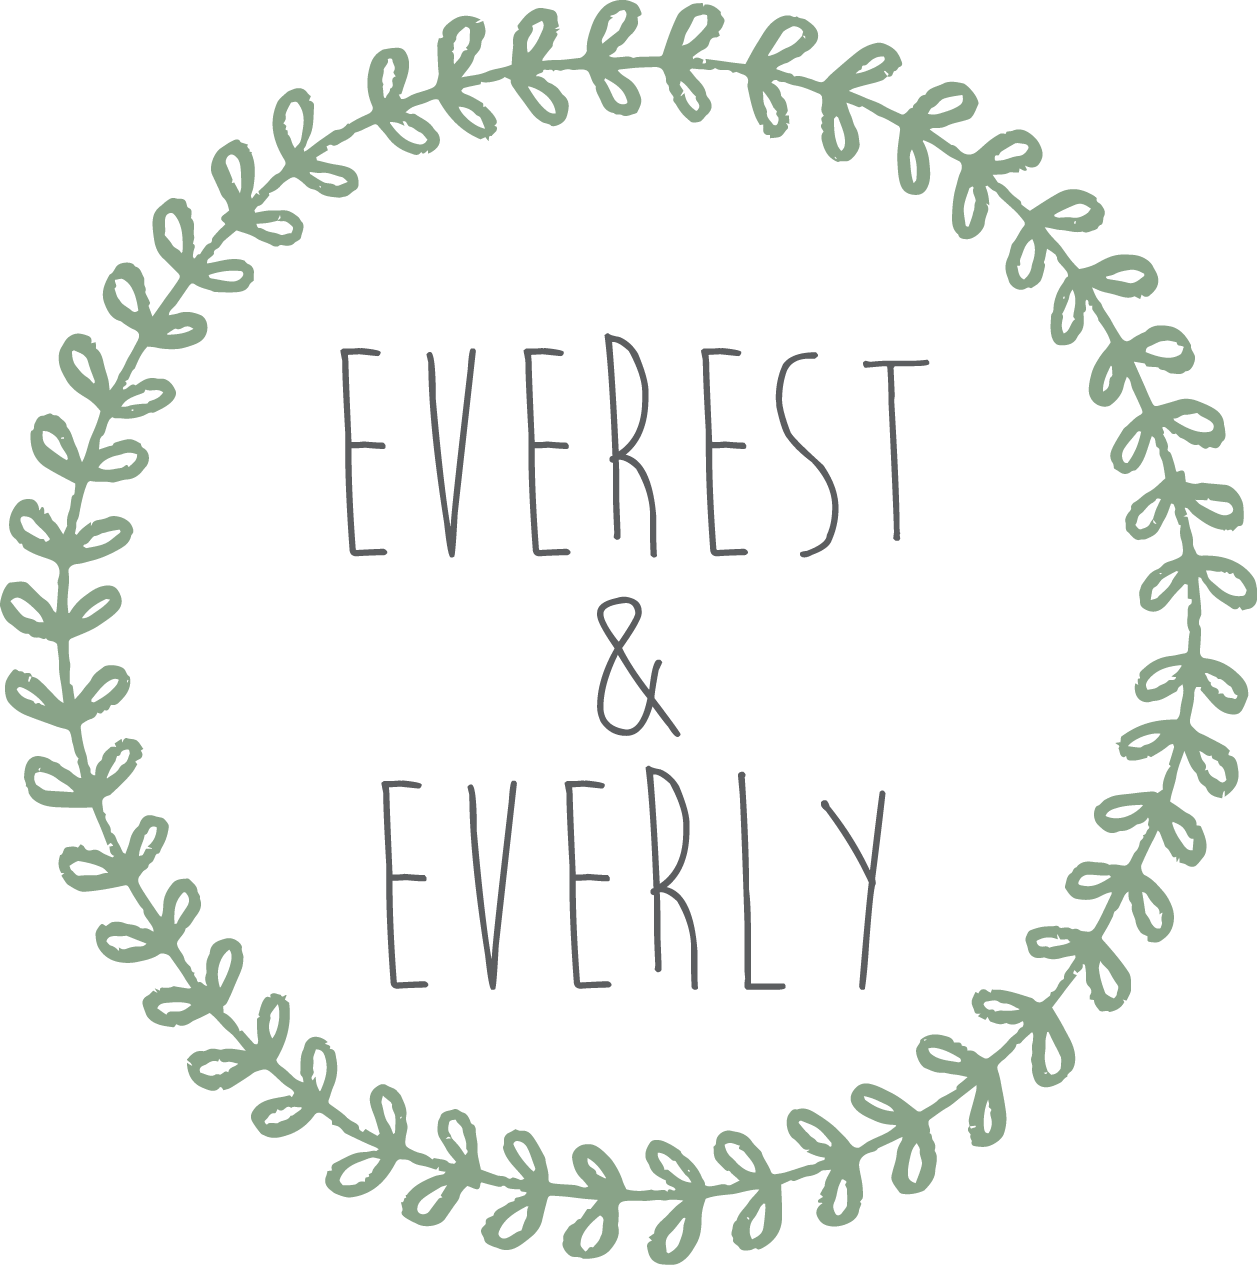 Bold & Pop : Everest & Everly Branding Design